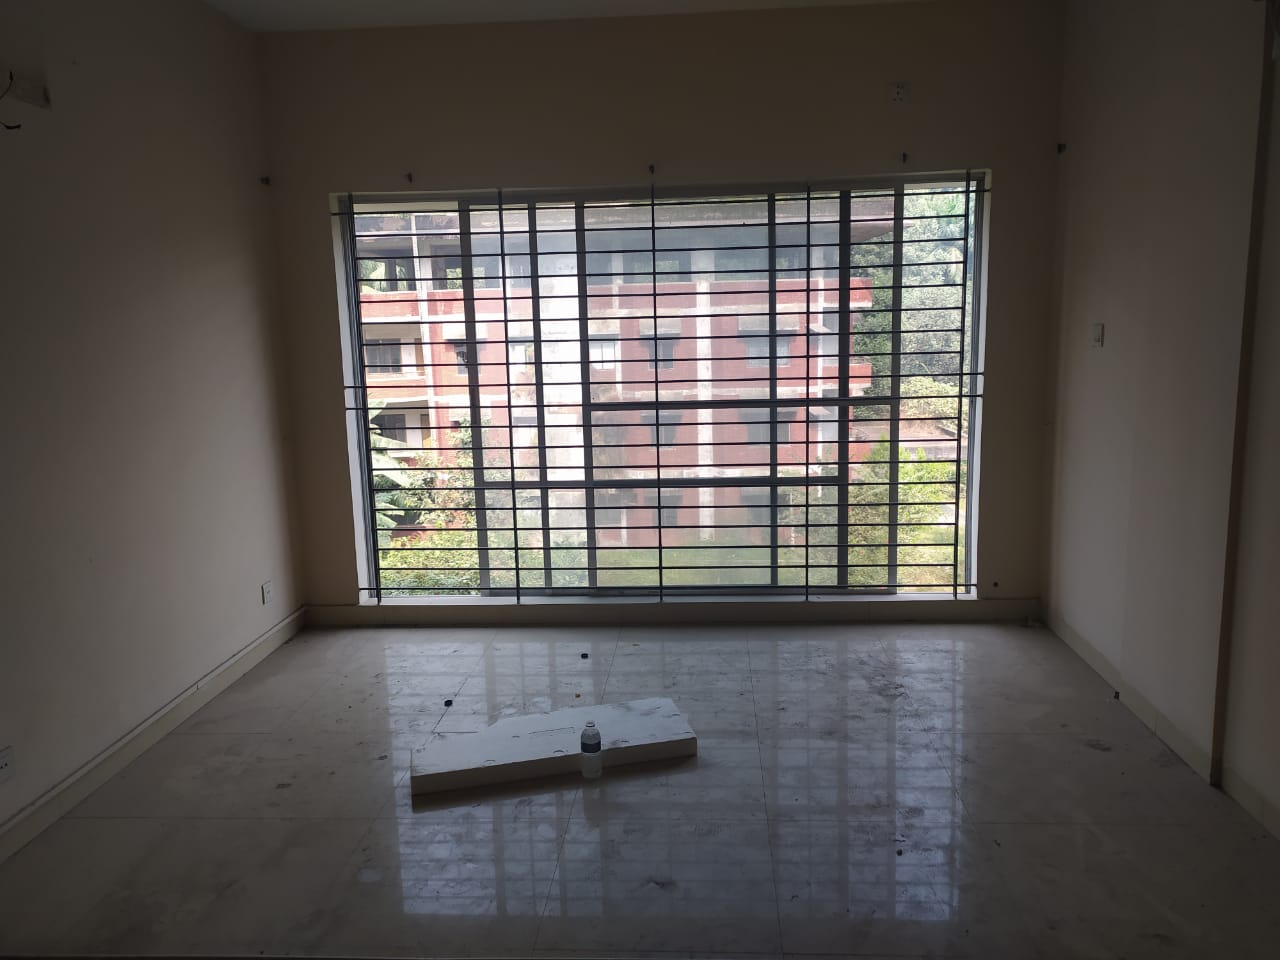 2495-sft-apartment-for-rent-in-north-khulshi-chittagong-5th-floor-268202